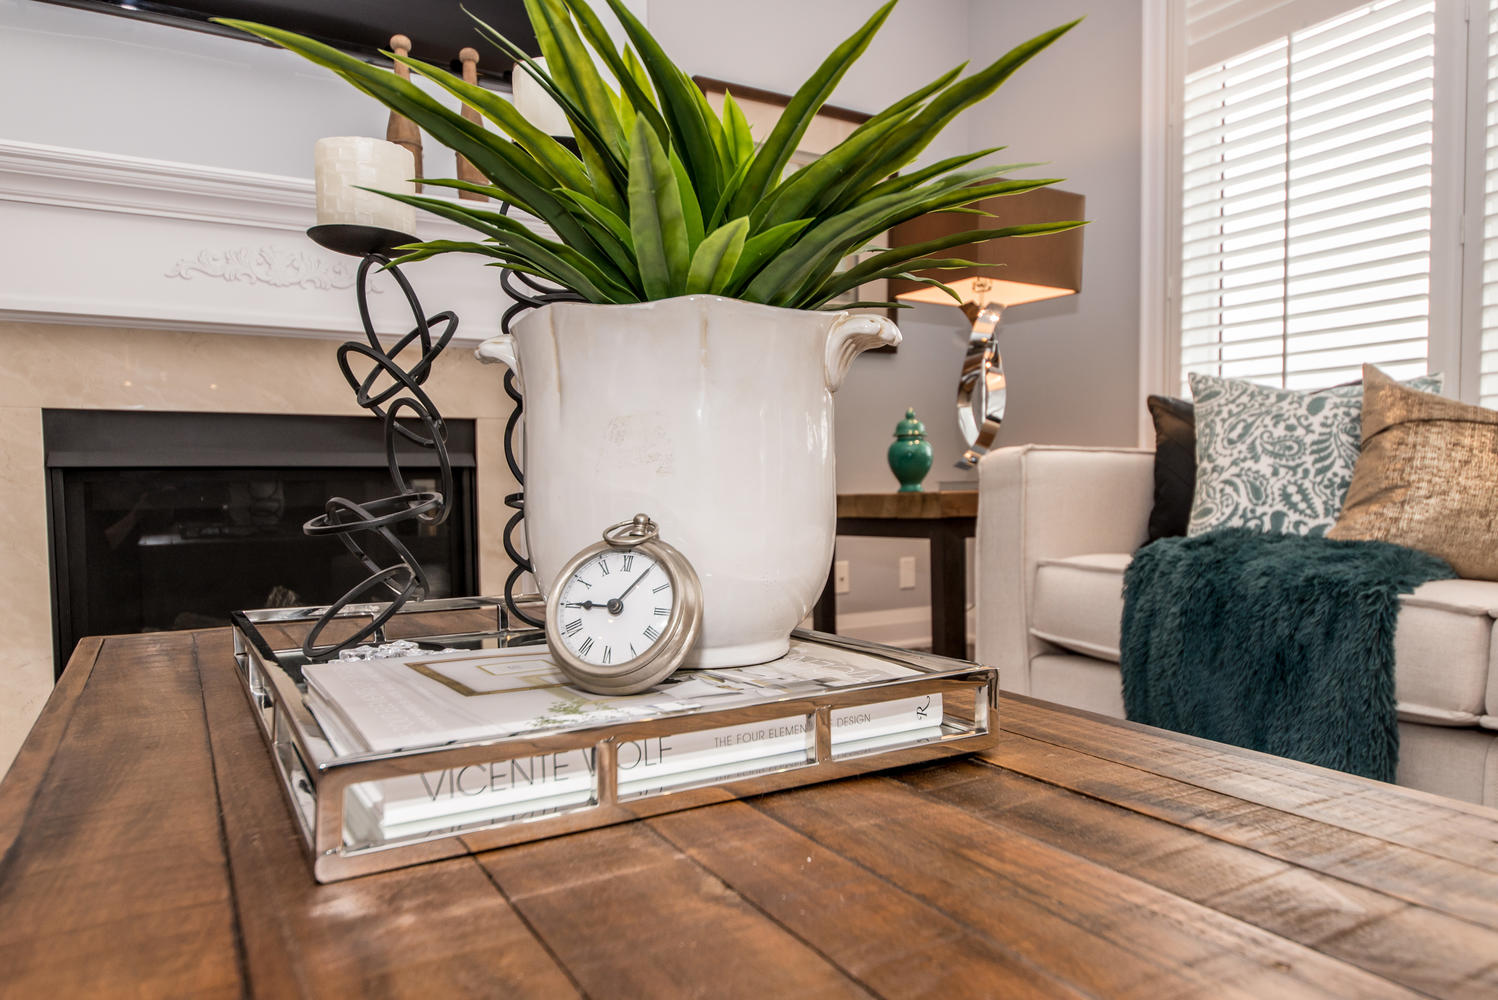 Coffee Table Top Display - Durham Region Home Stagiing